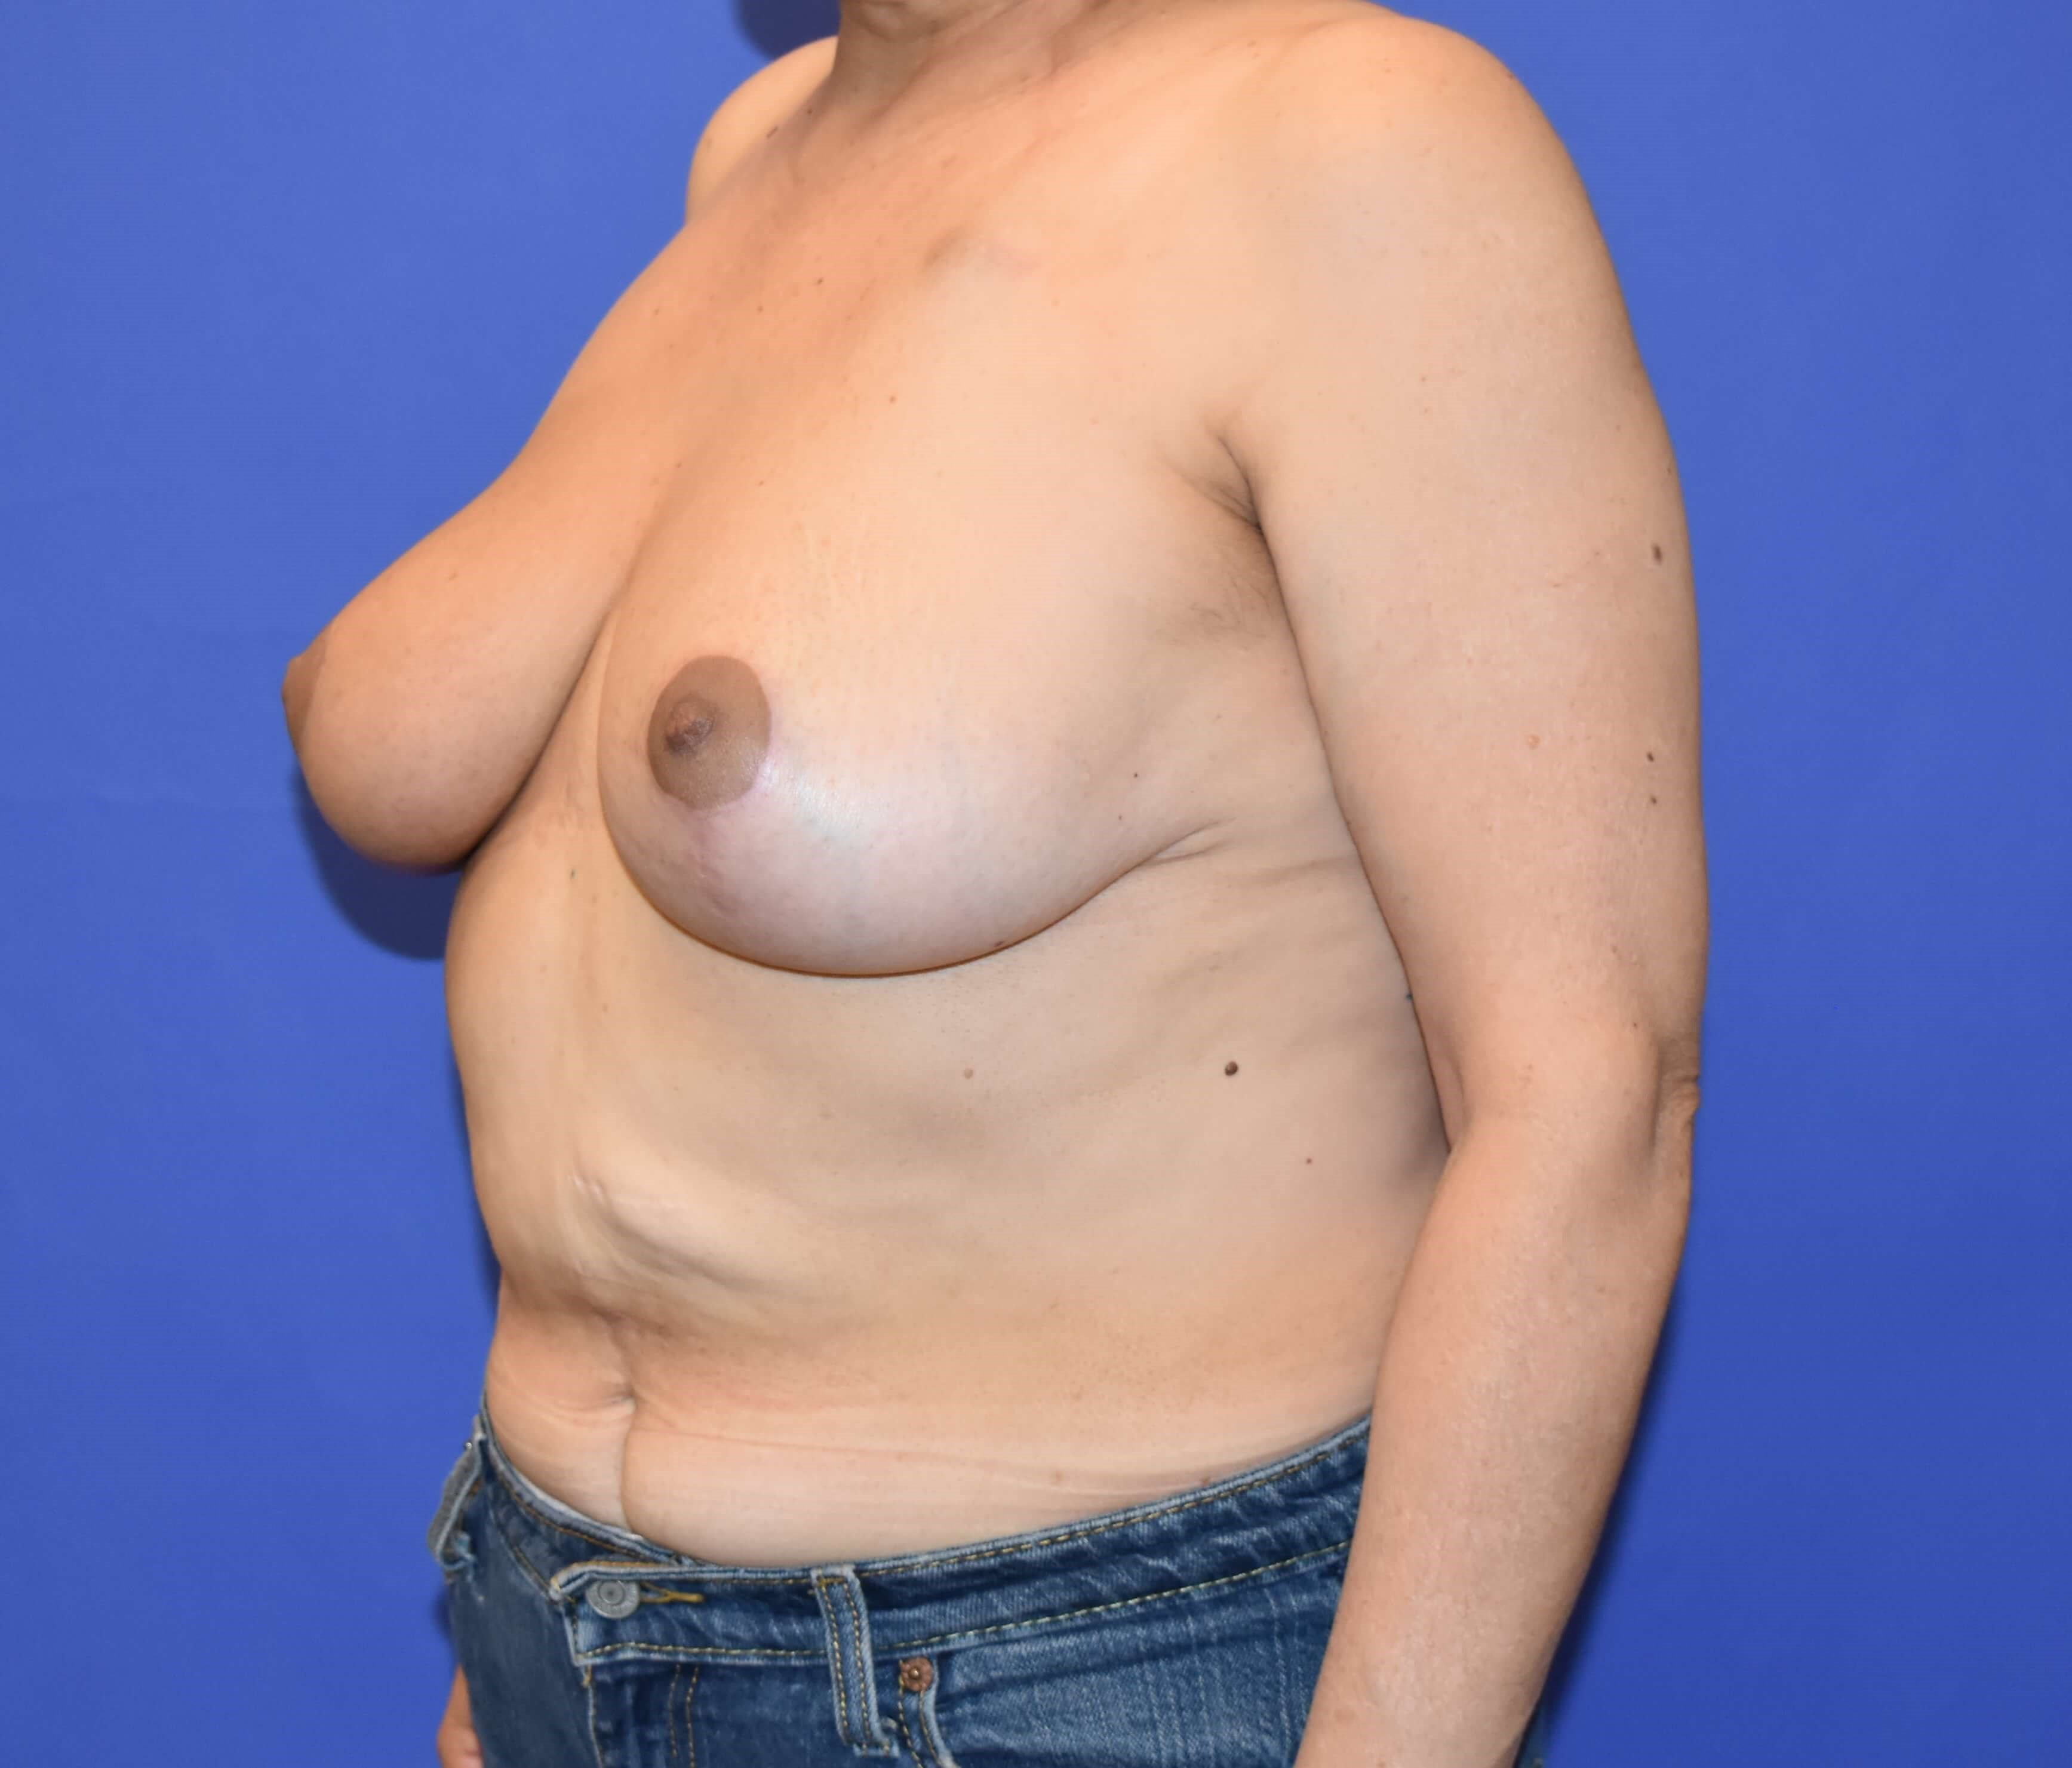 Breast Reconstruction Katy After 4 months